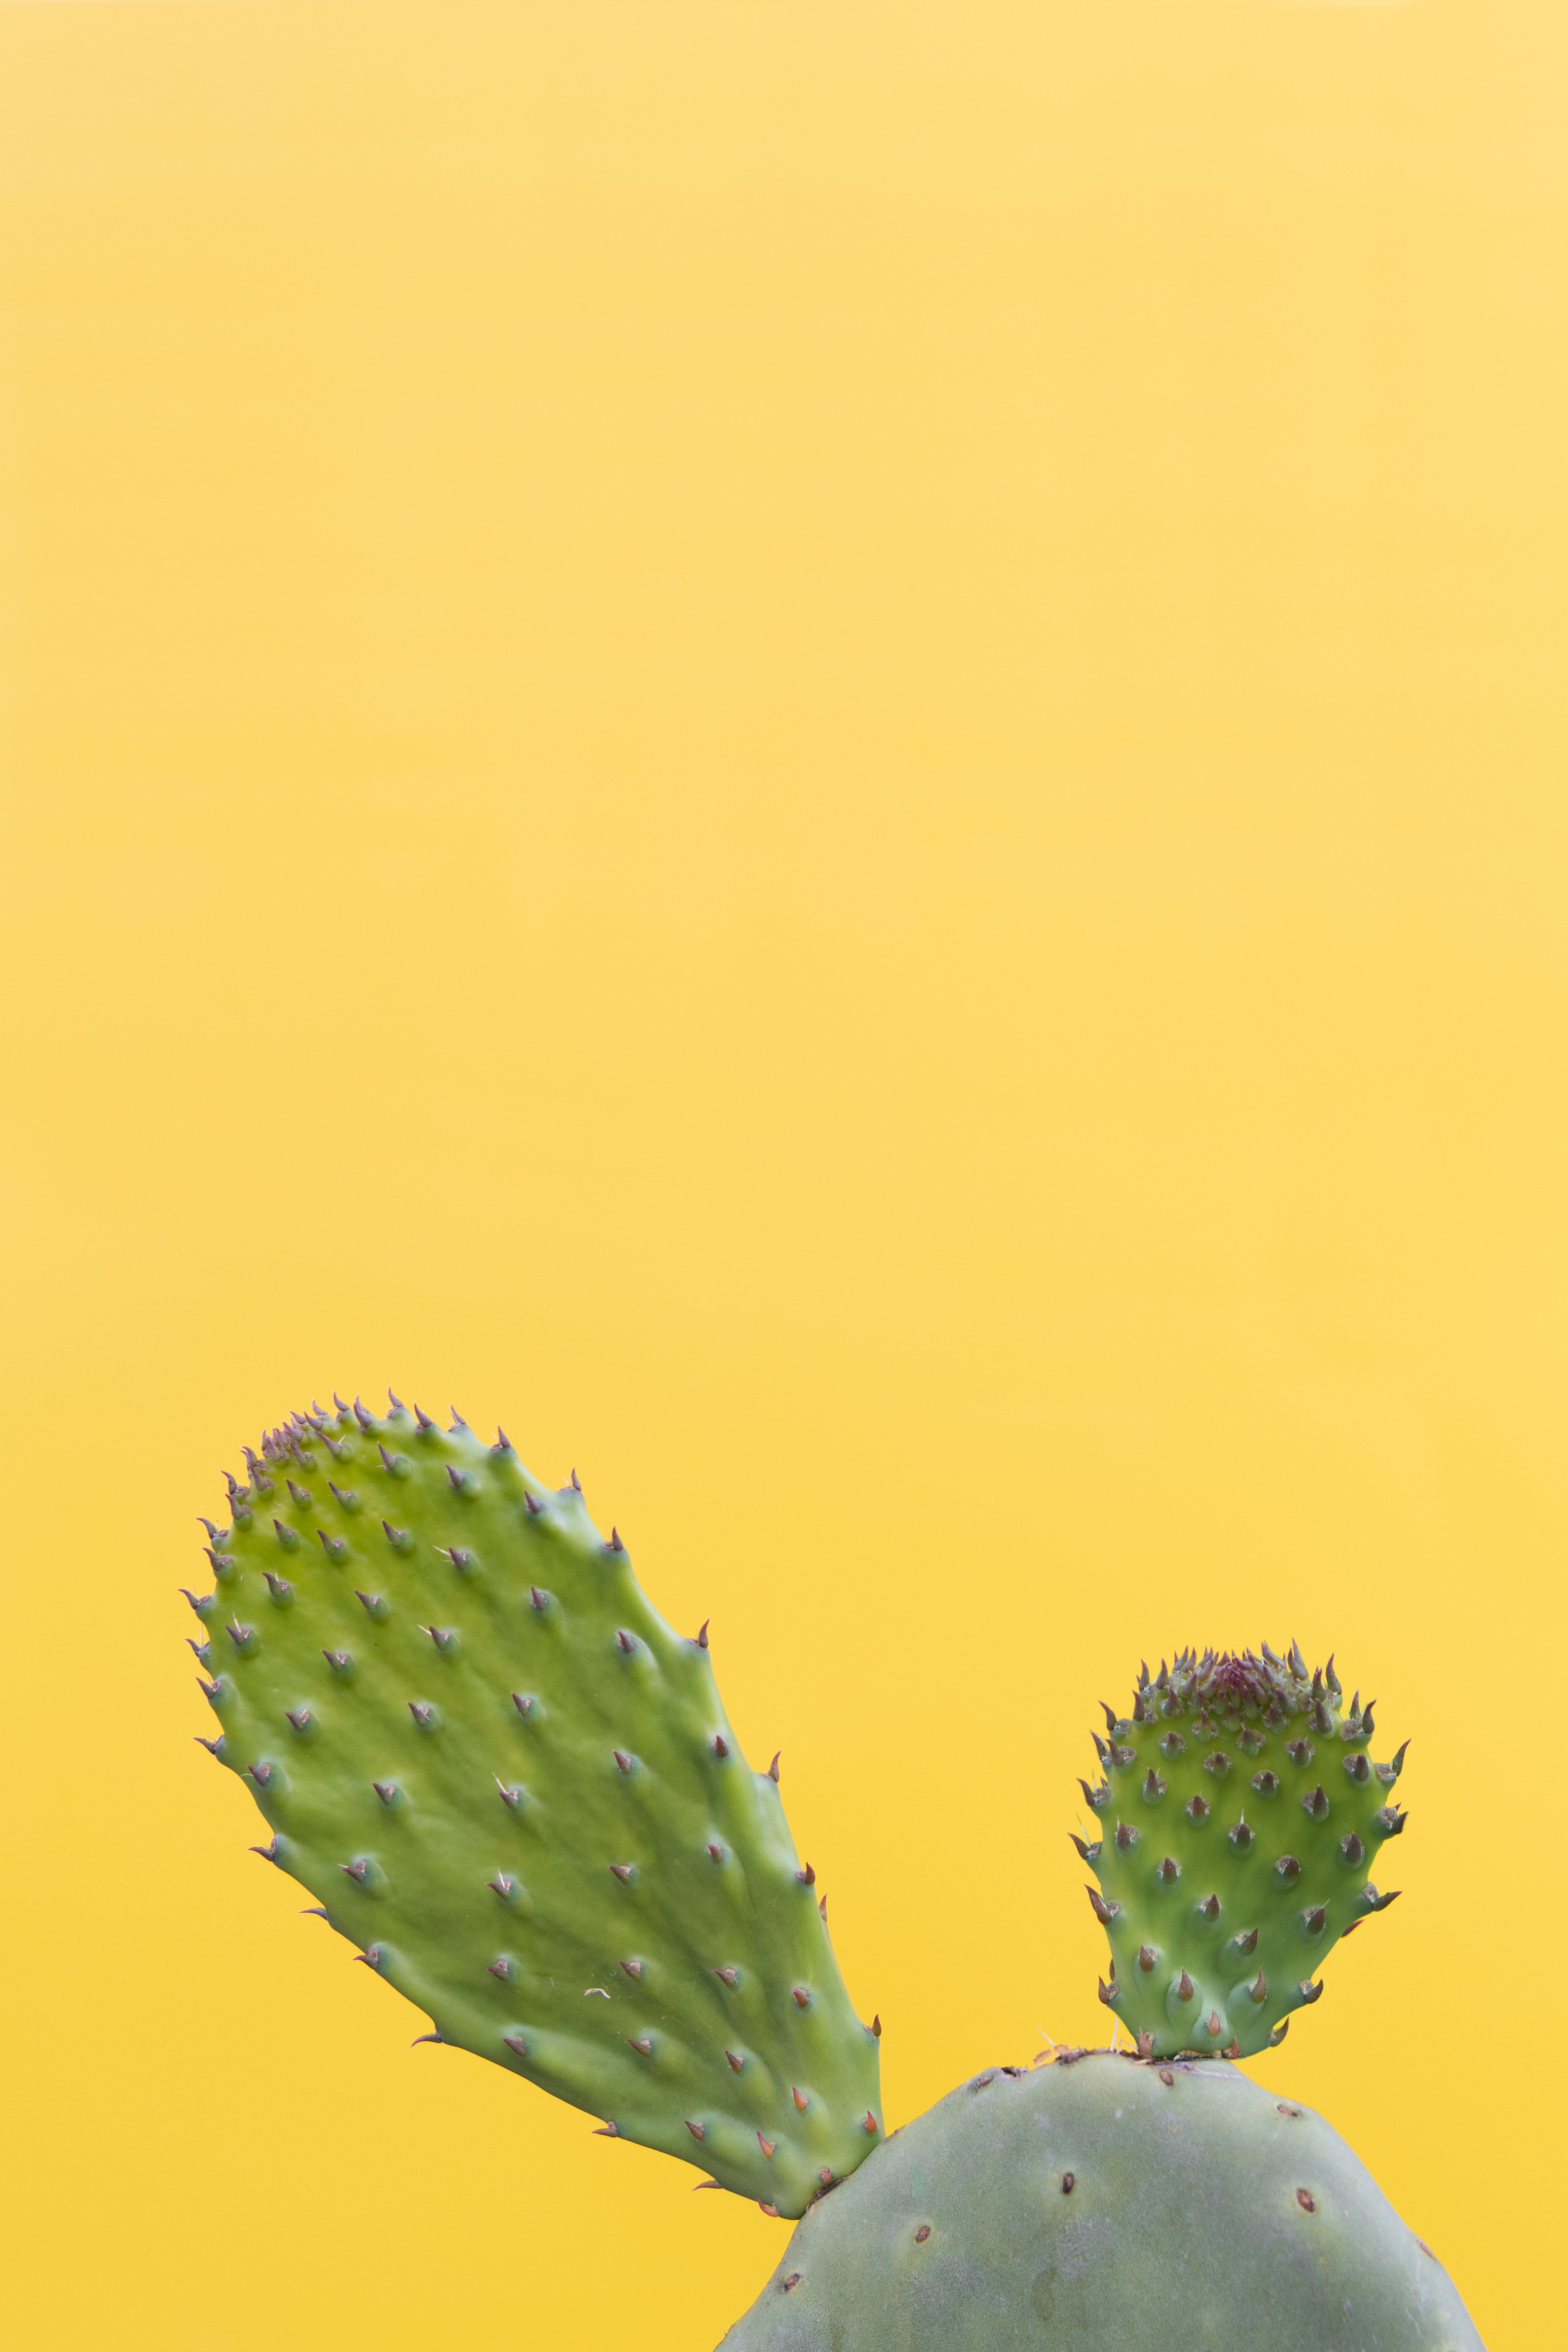 Wallpaper Cactus Succulent Prickly Green Minimalism Minimalist Phone Wallpaper Succulent 2872280 Hd Wallpaper Backgrounds Download